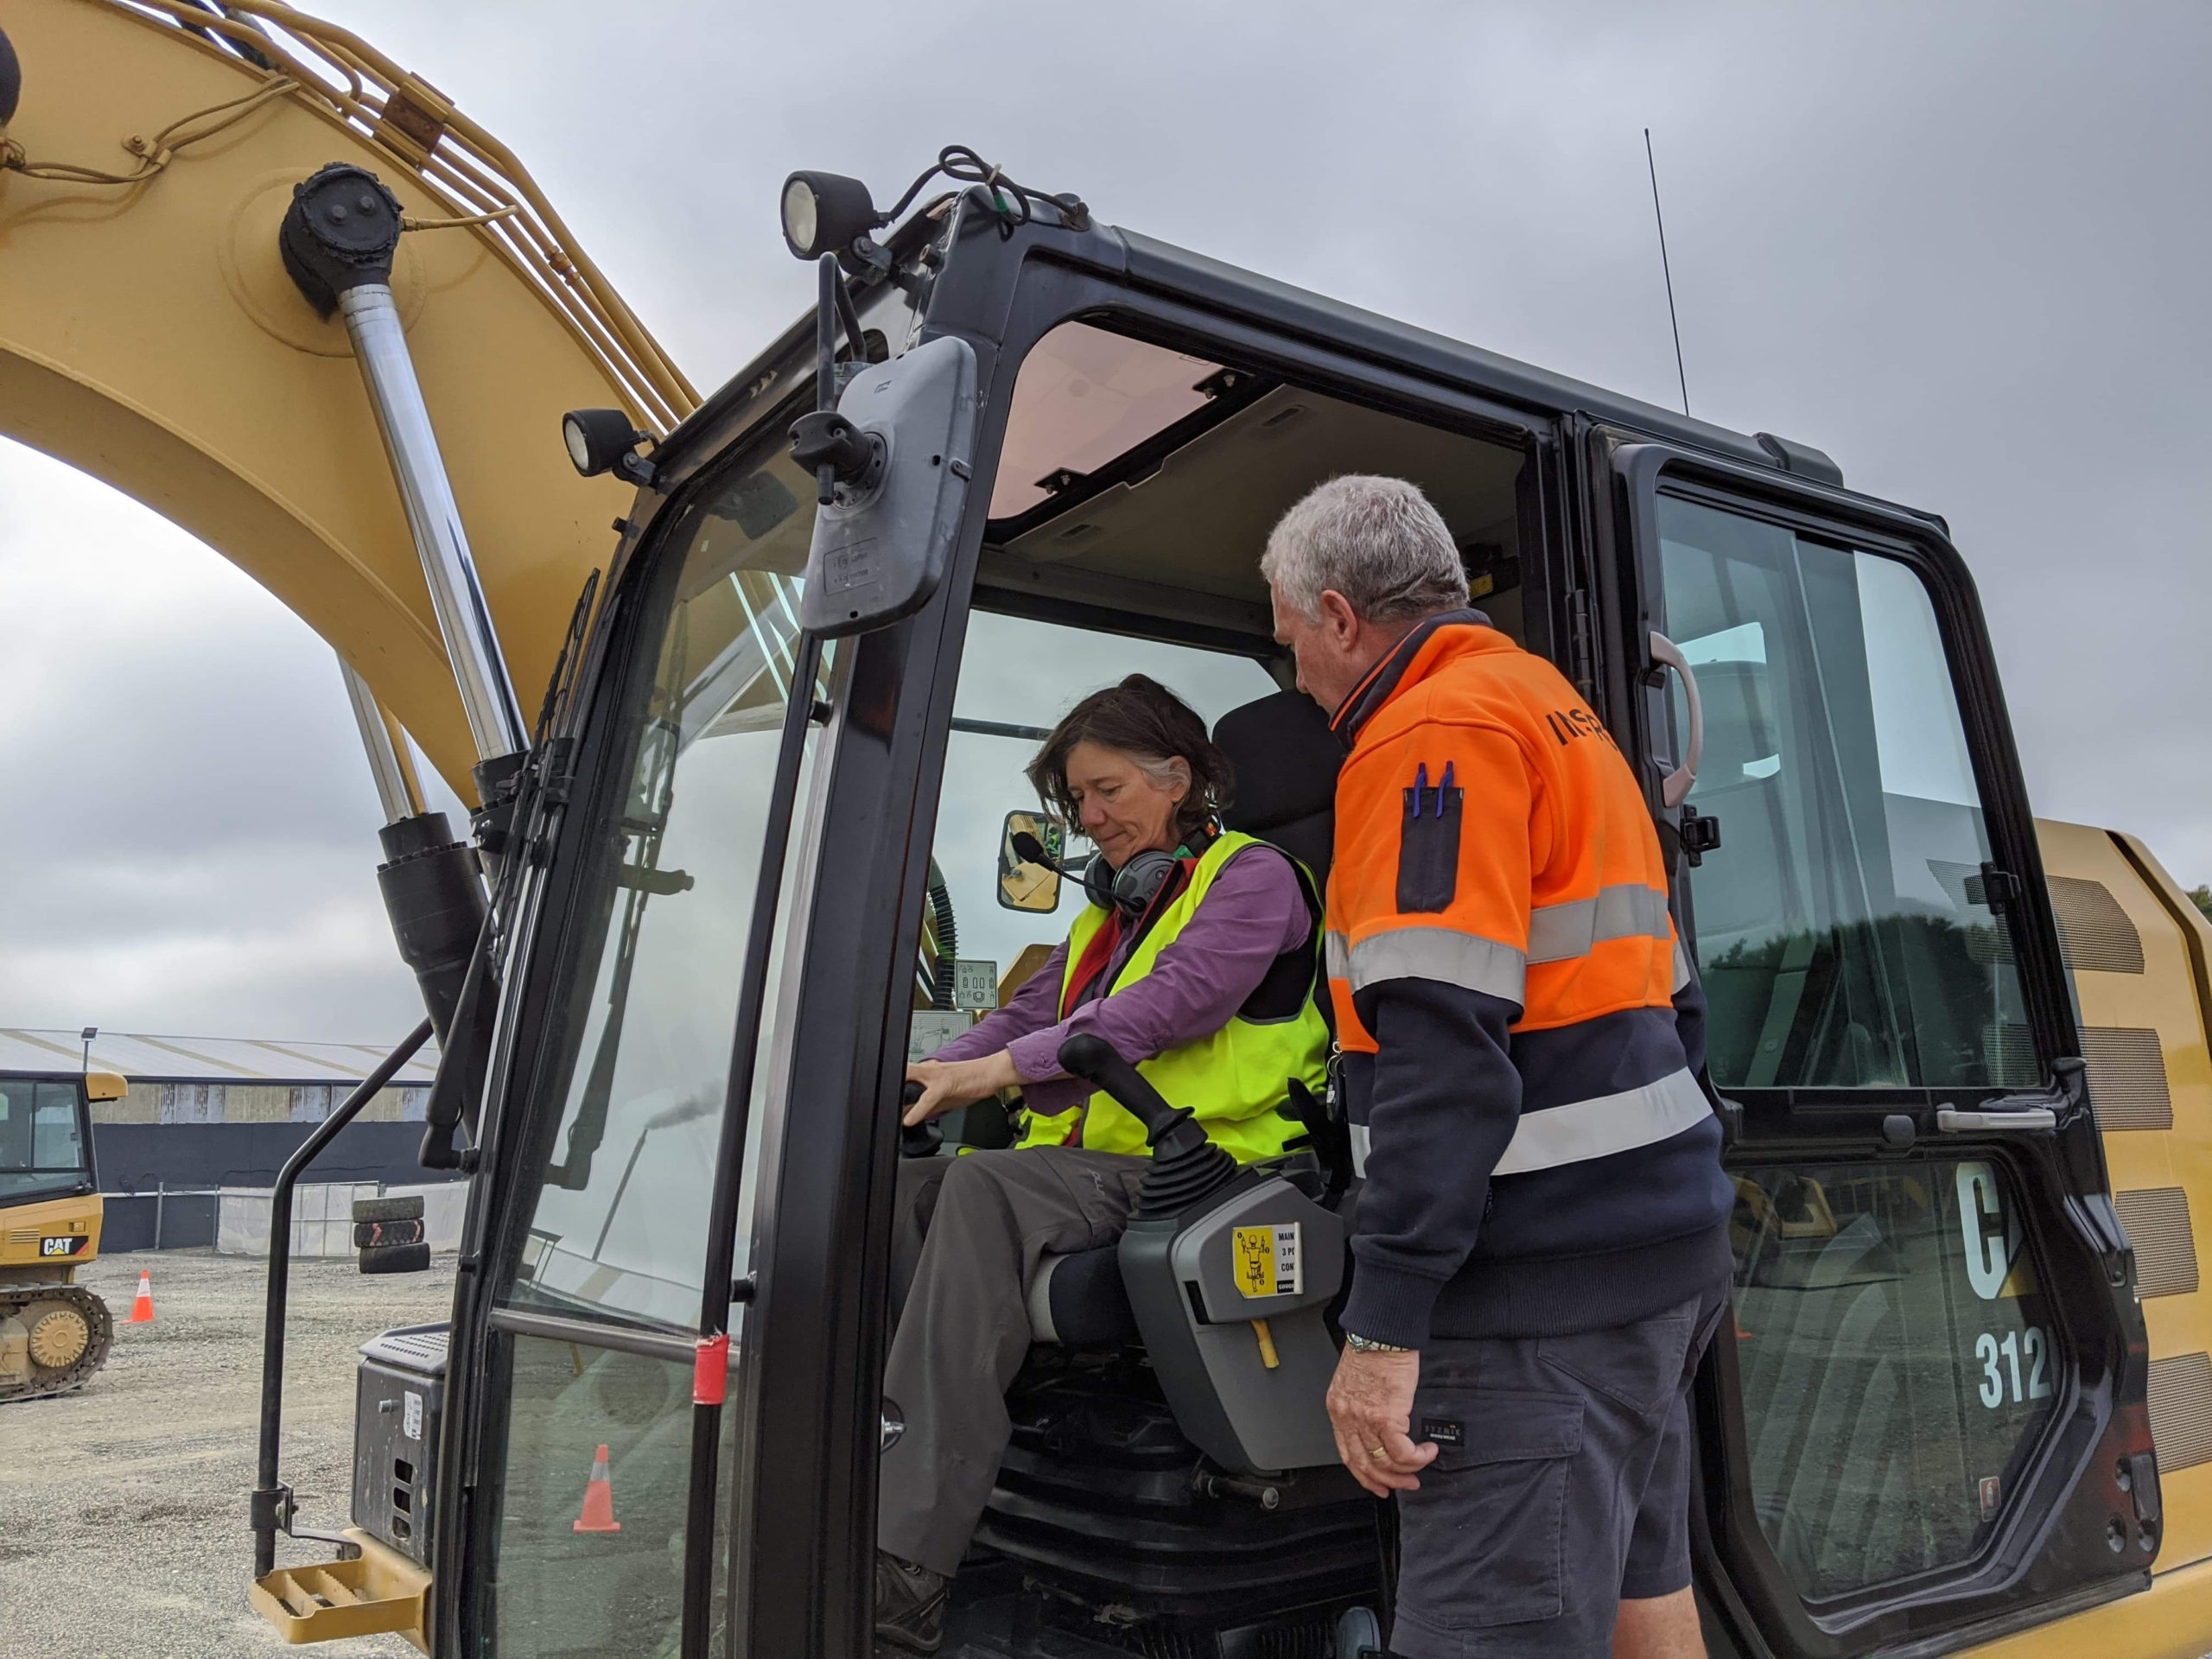 Colin shows me some of the basics in the digger